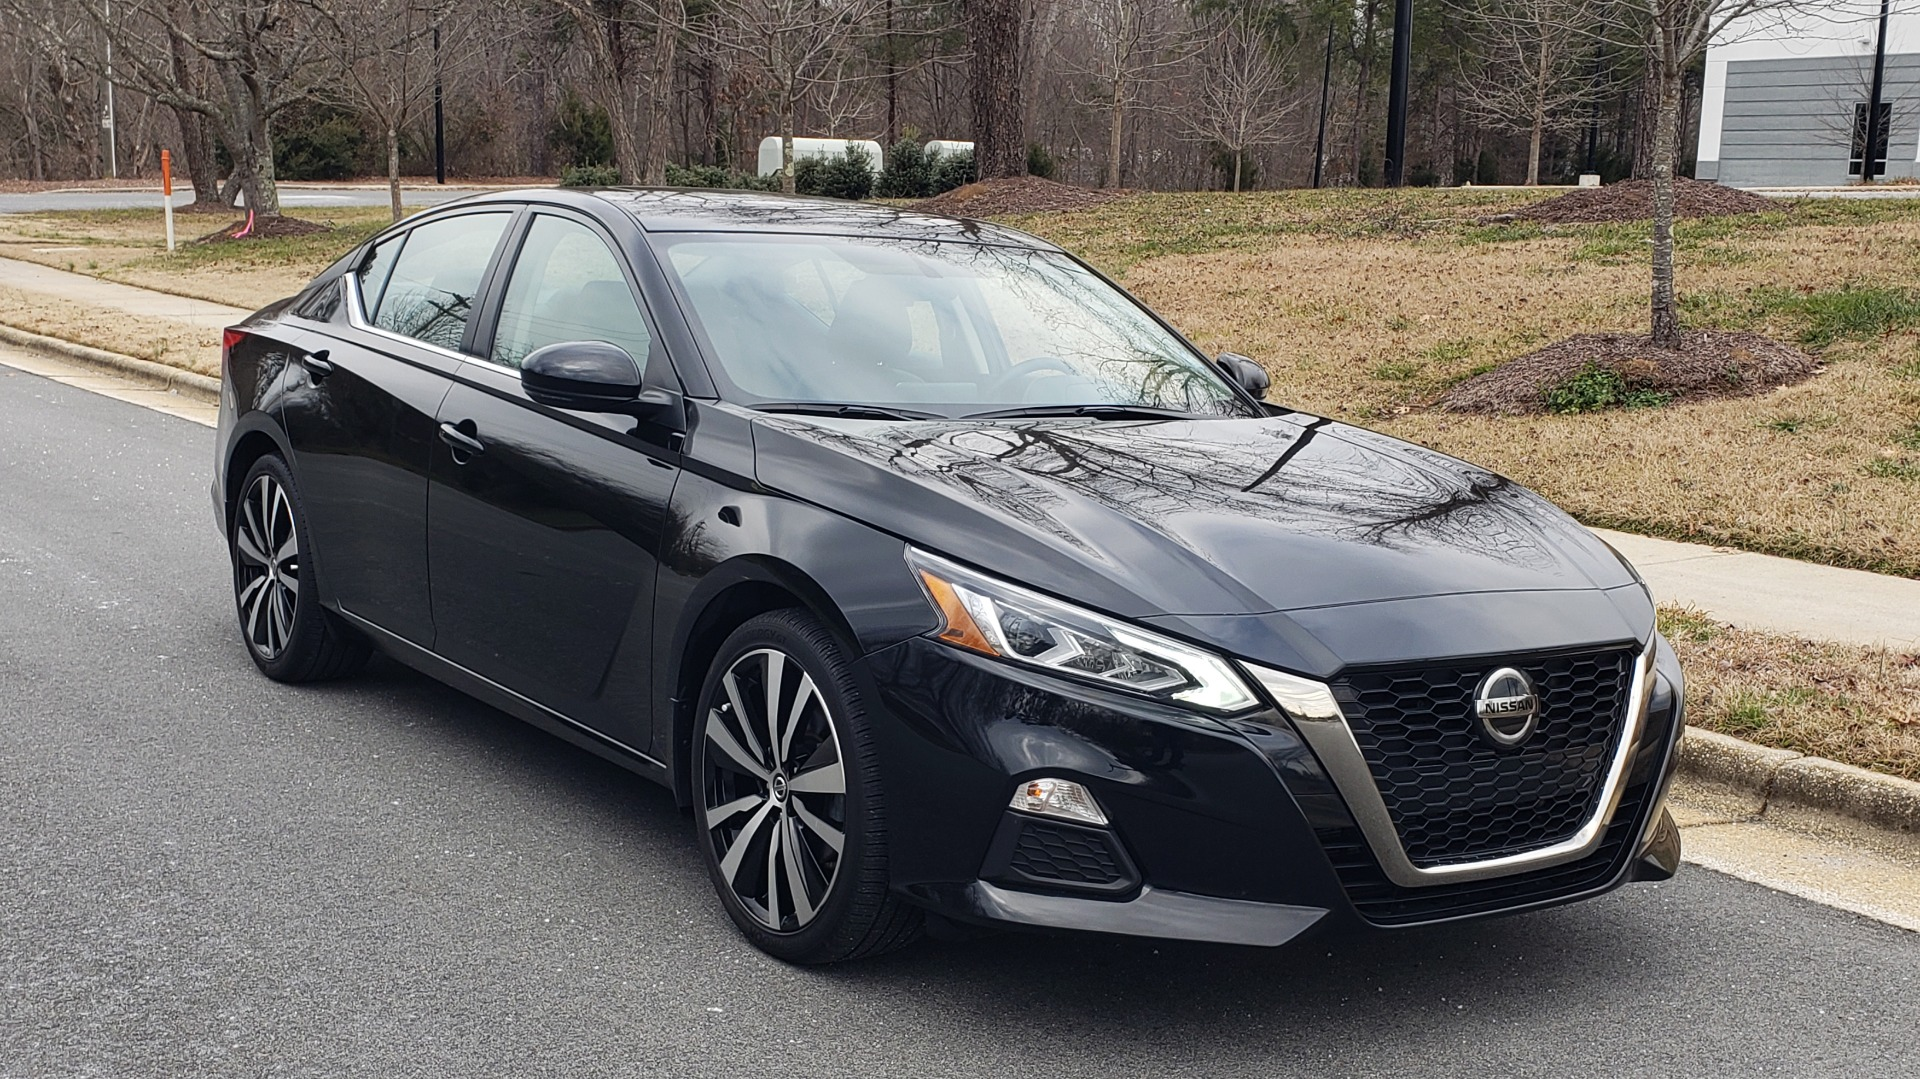 Used 2019 Nissan ALTIMA 2.5 SR PREMIUM / 2.5L / CVT TRANS / HTD STS / SUNROOF / REARVIEW for sale $19,995 at Formula Imports in Charlotte NC 28227 5